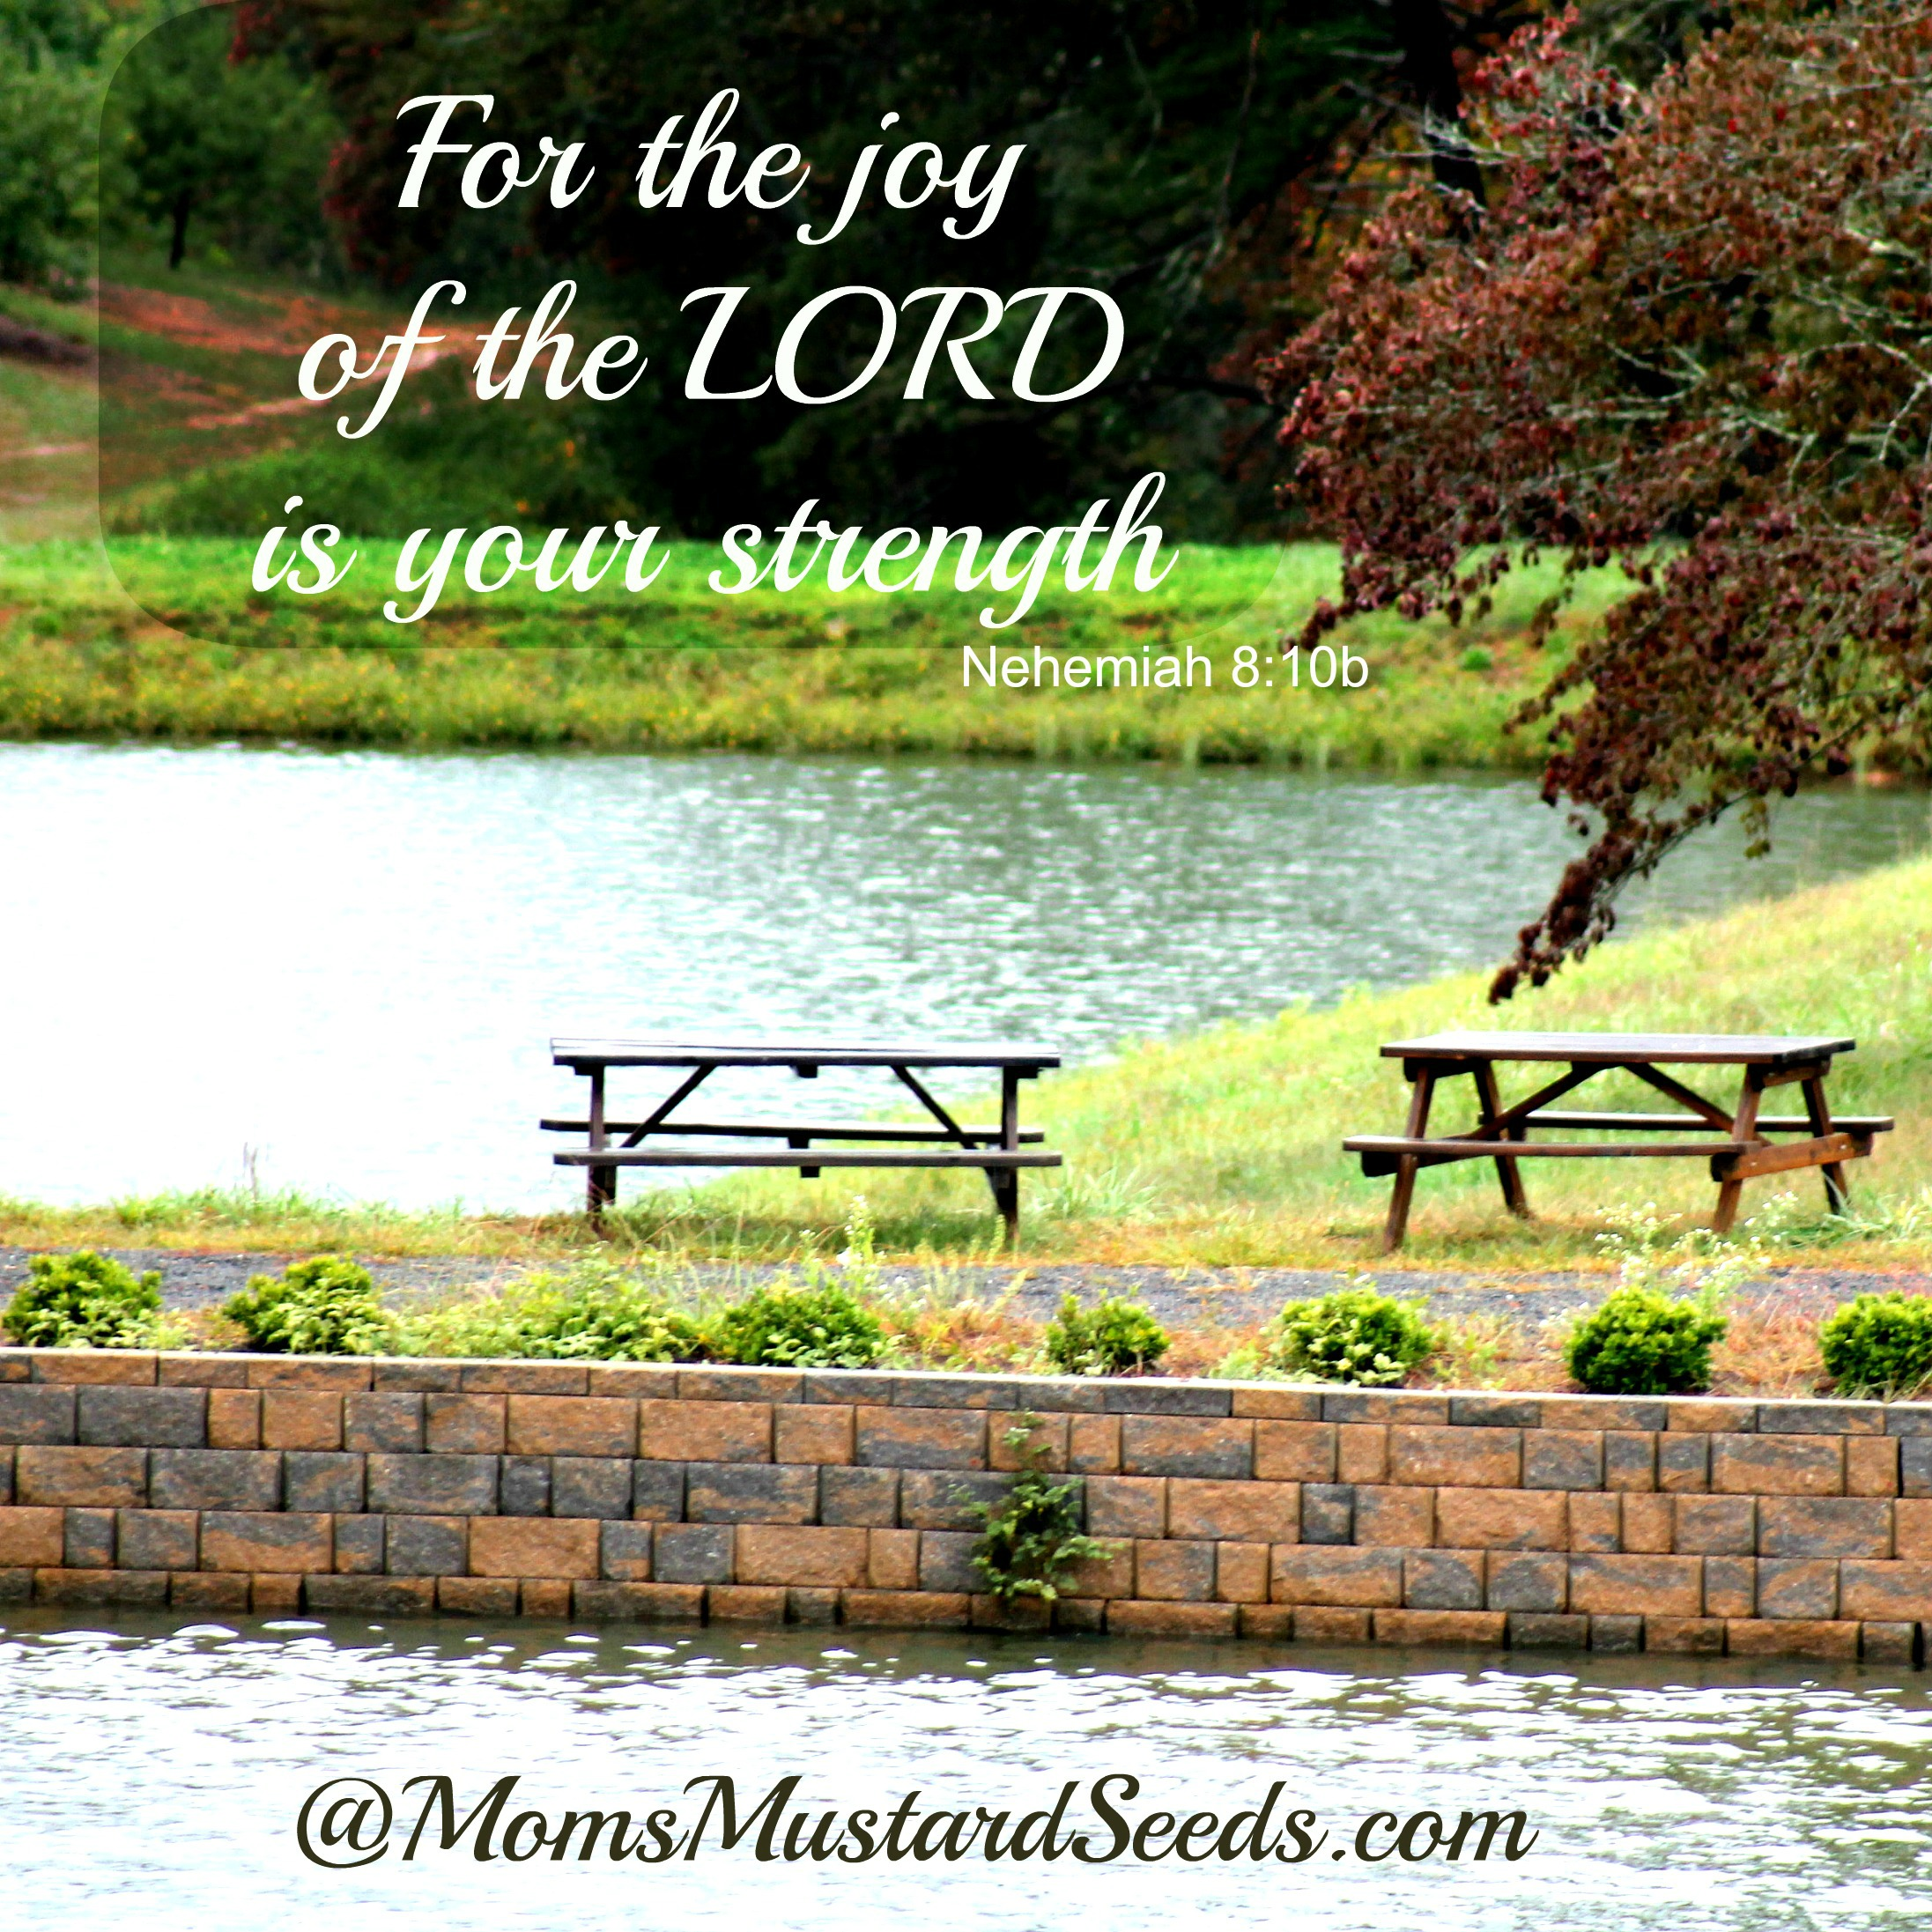 Finding Joy and Strength